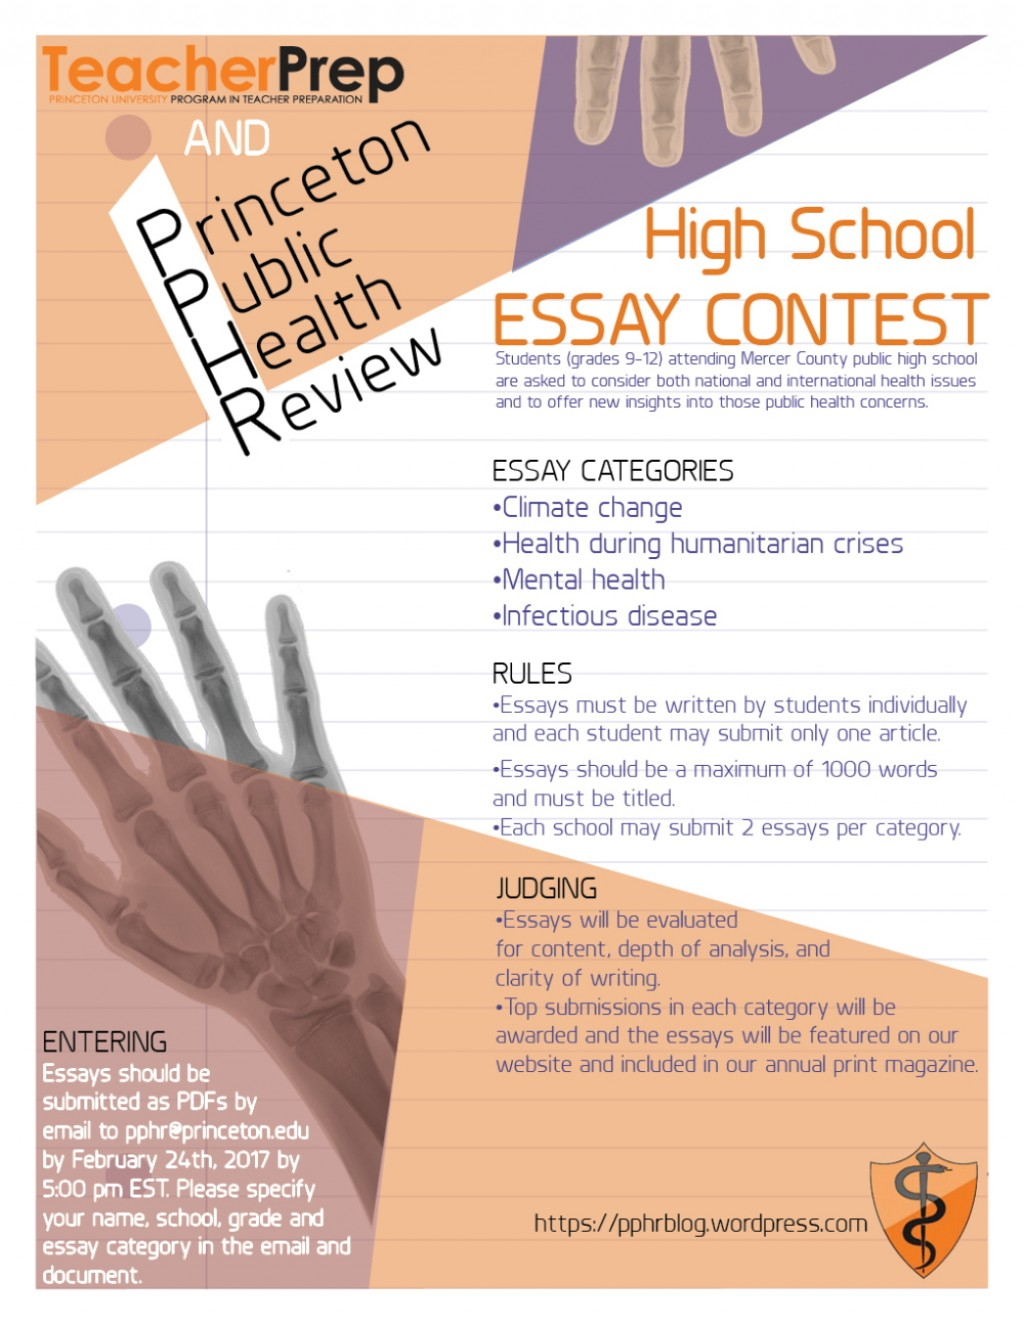 011 Essay Contests For High School Students Pphressaycontestfeb24w1000 Staggering 2017 Large